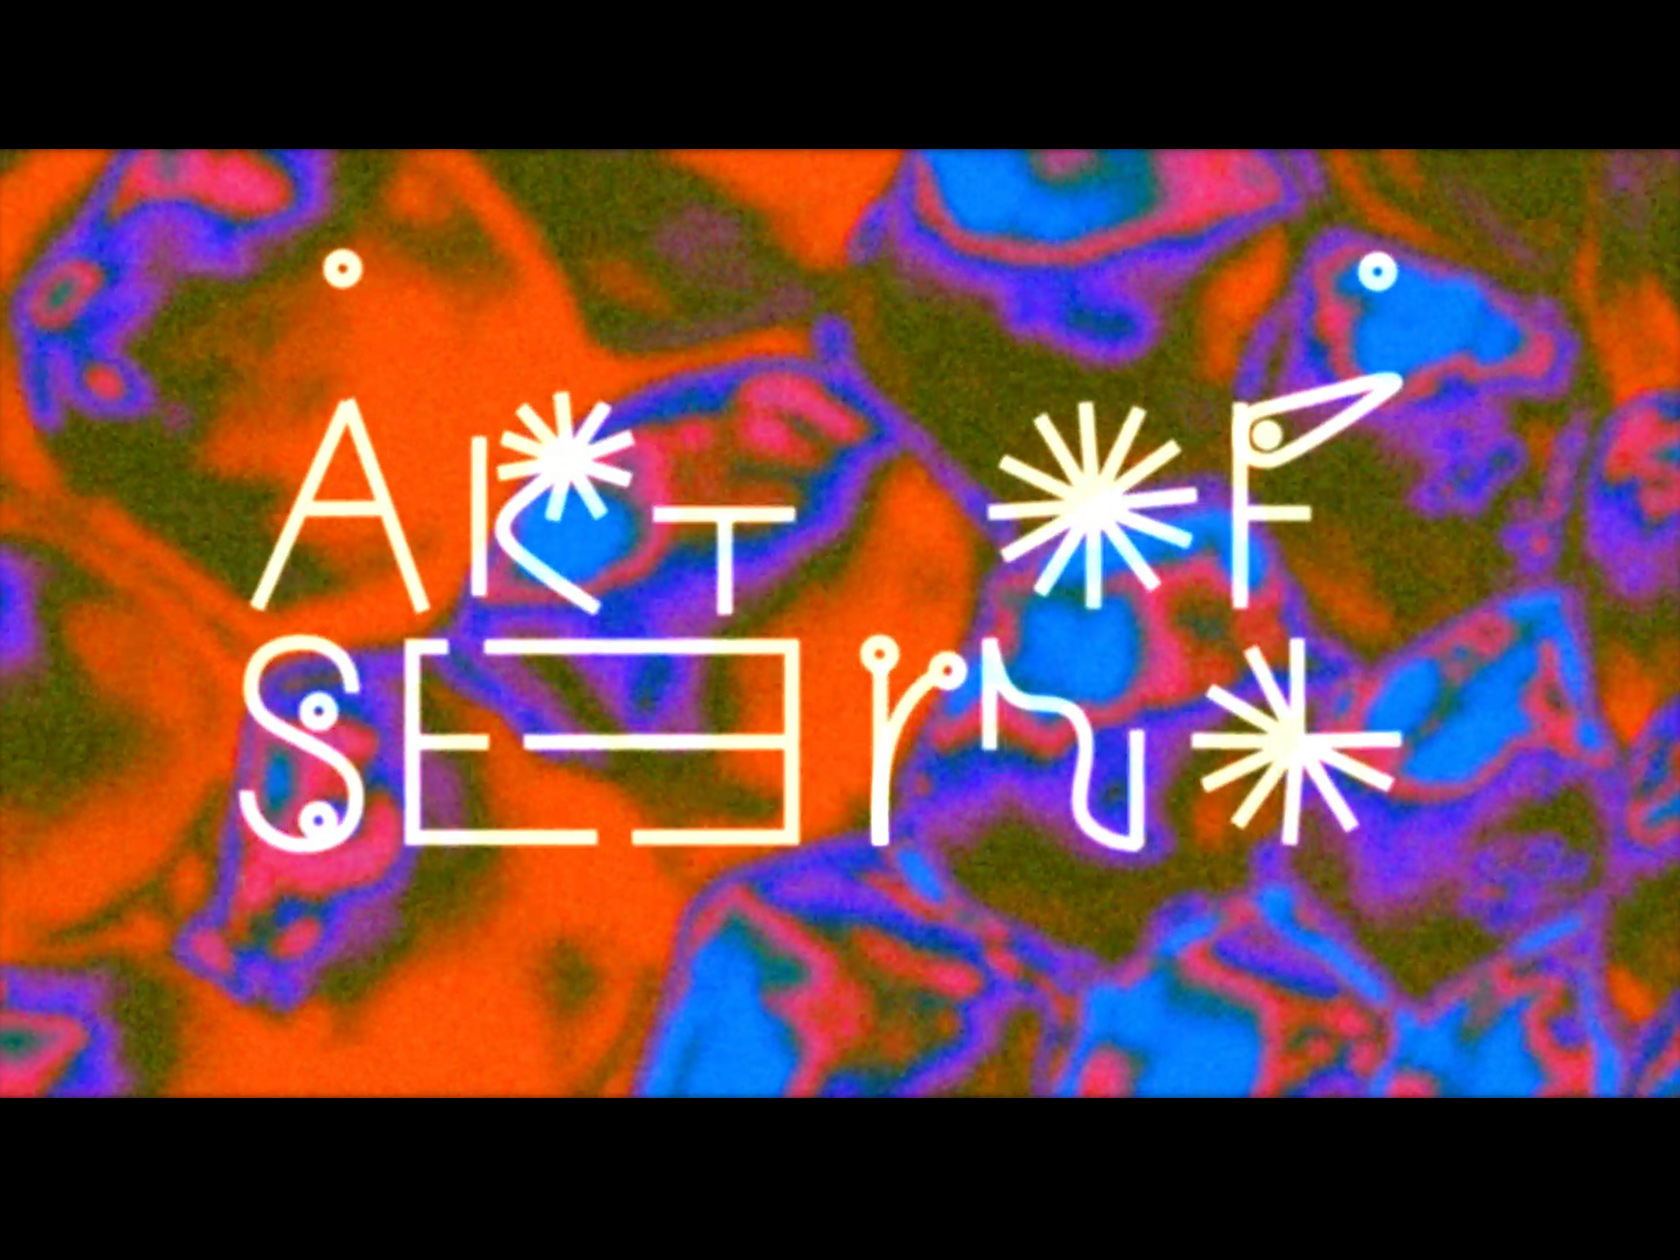 00 collide24 Lukas Keysell Carter Fools - 'Art of Seeing' by Carter Fools and Lukas Keysell takes you on an audio-visual journey for the eyes and mind to wander through